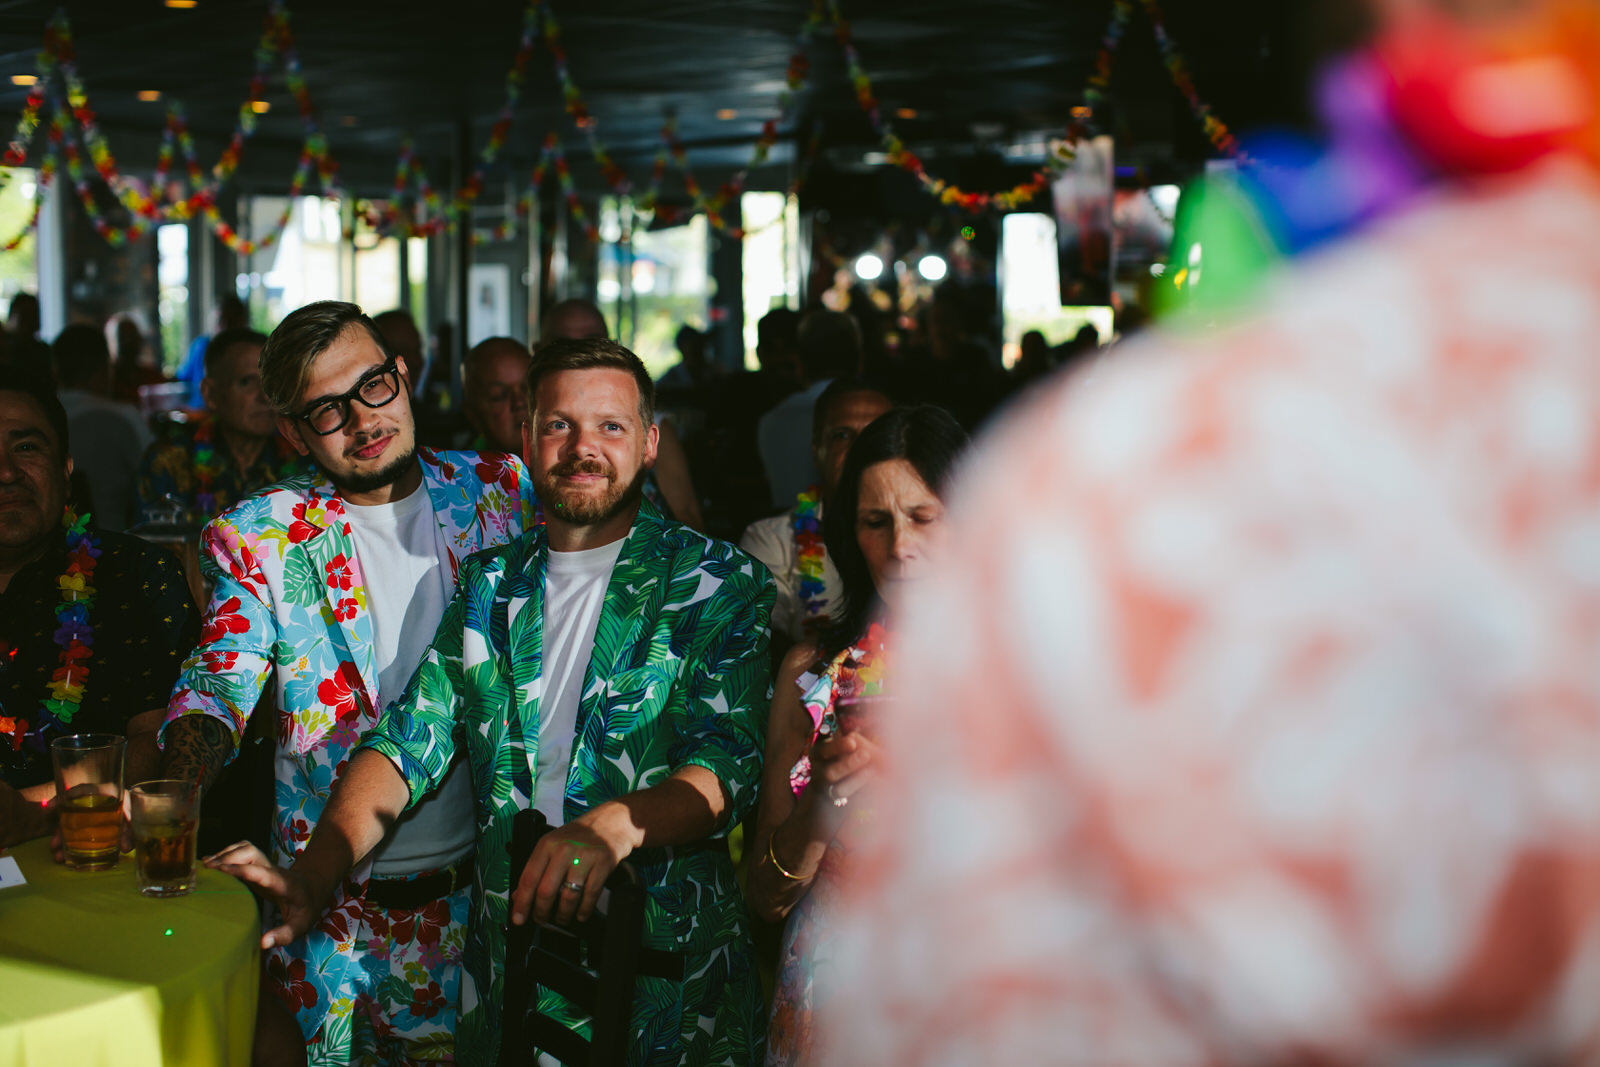 lgbt-elopement-party-the-pub-wilton-manors-tiny-house-photo-12.jpg